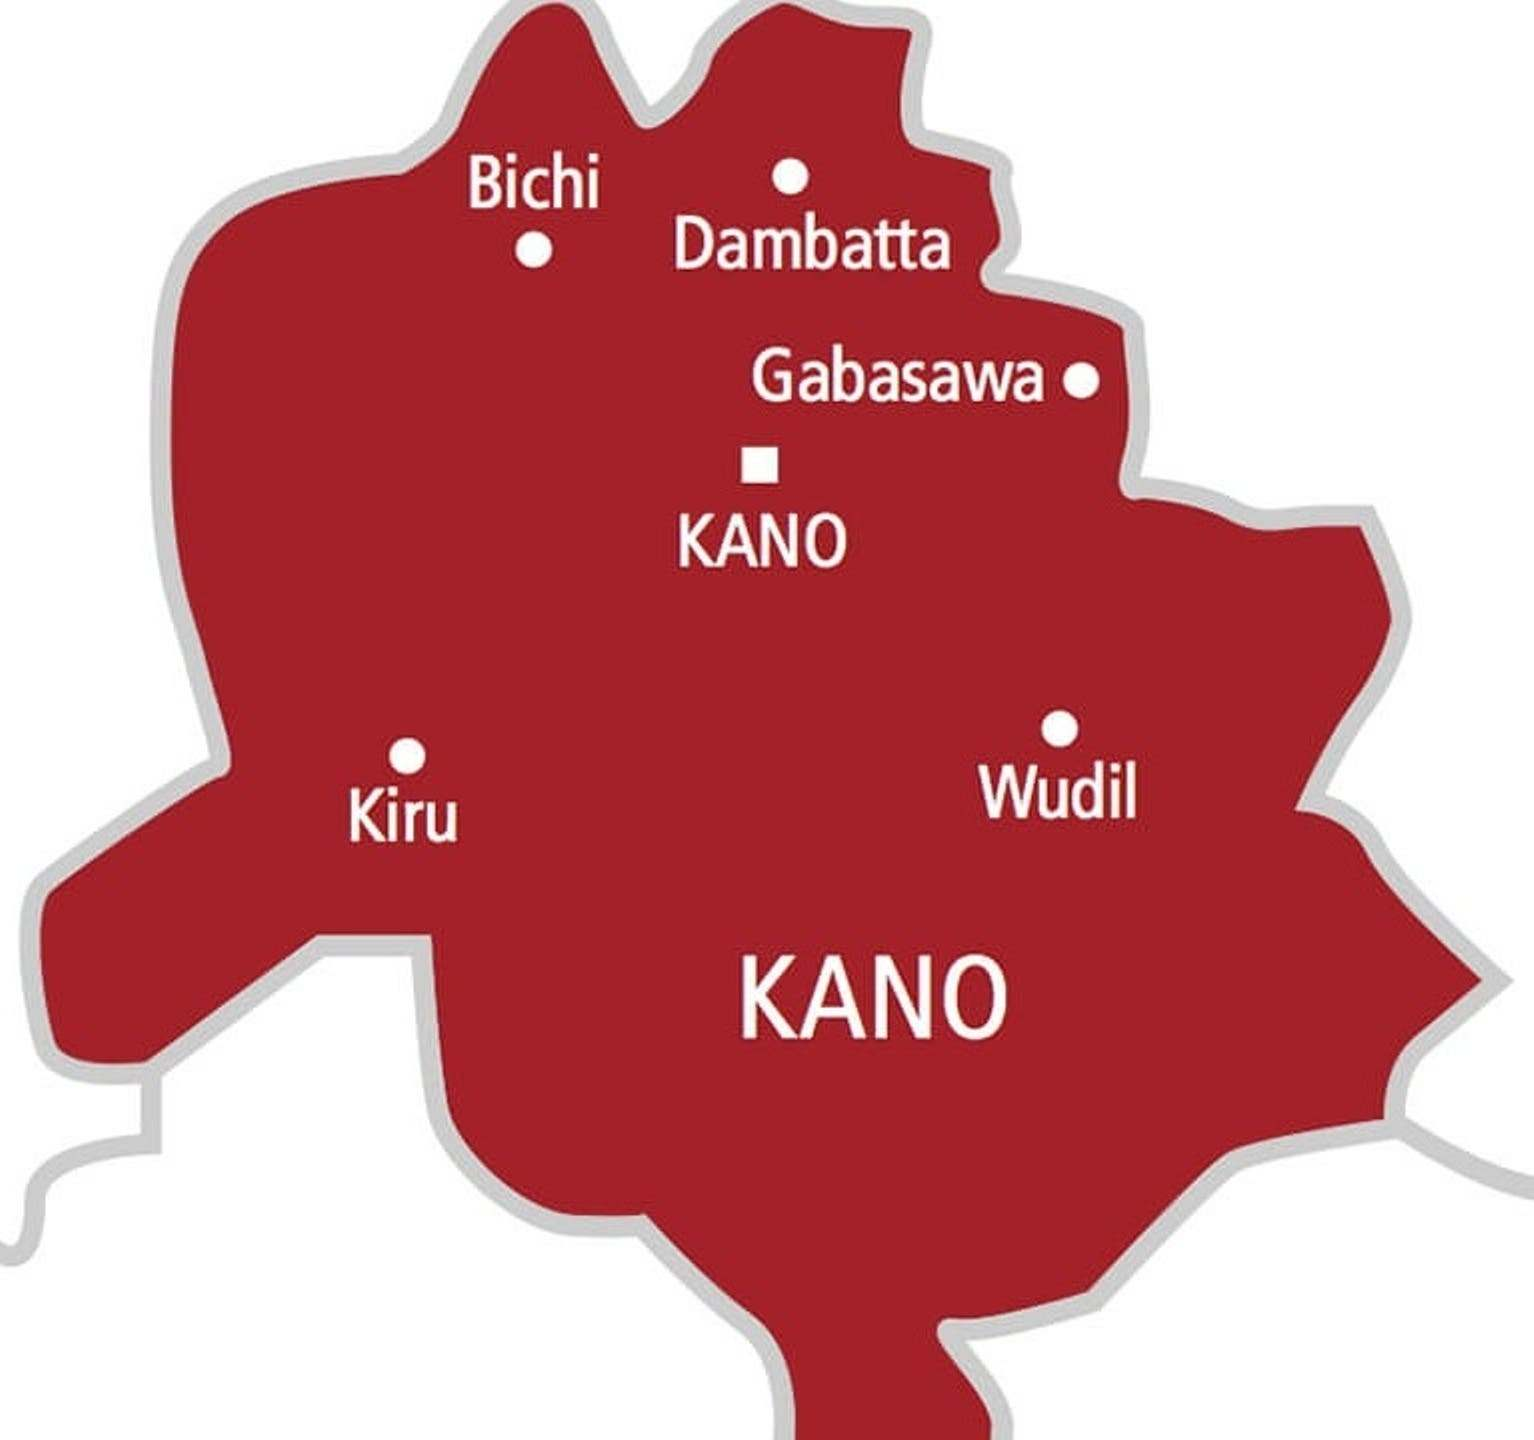 Kano to improve revenue from dry port, special economic zone projects